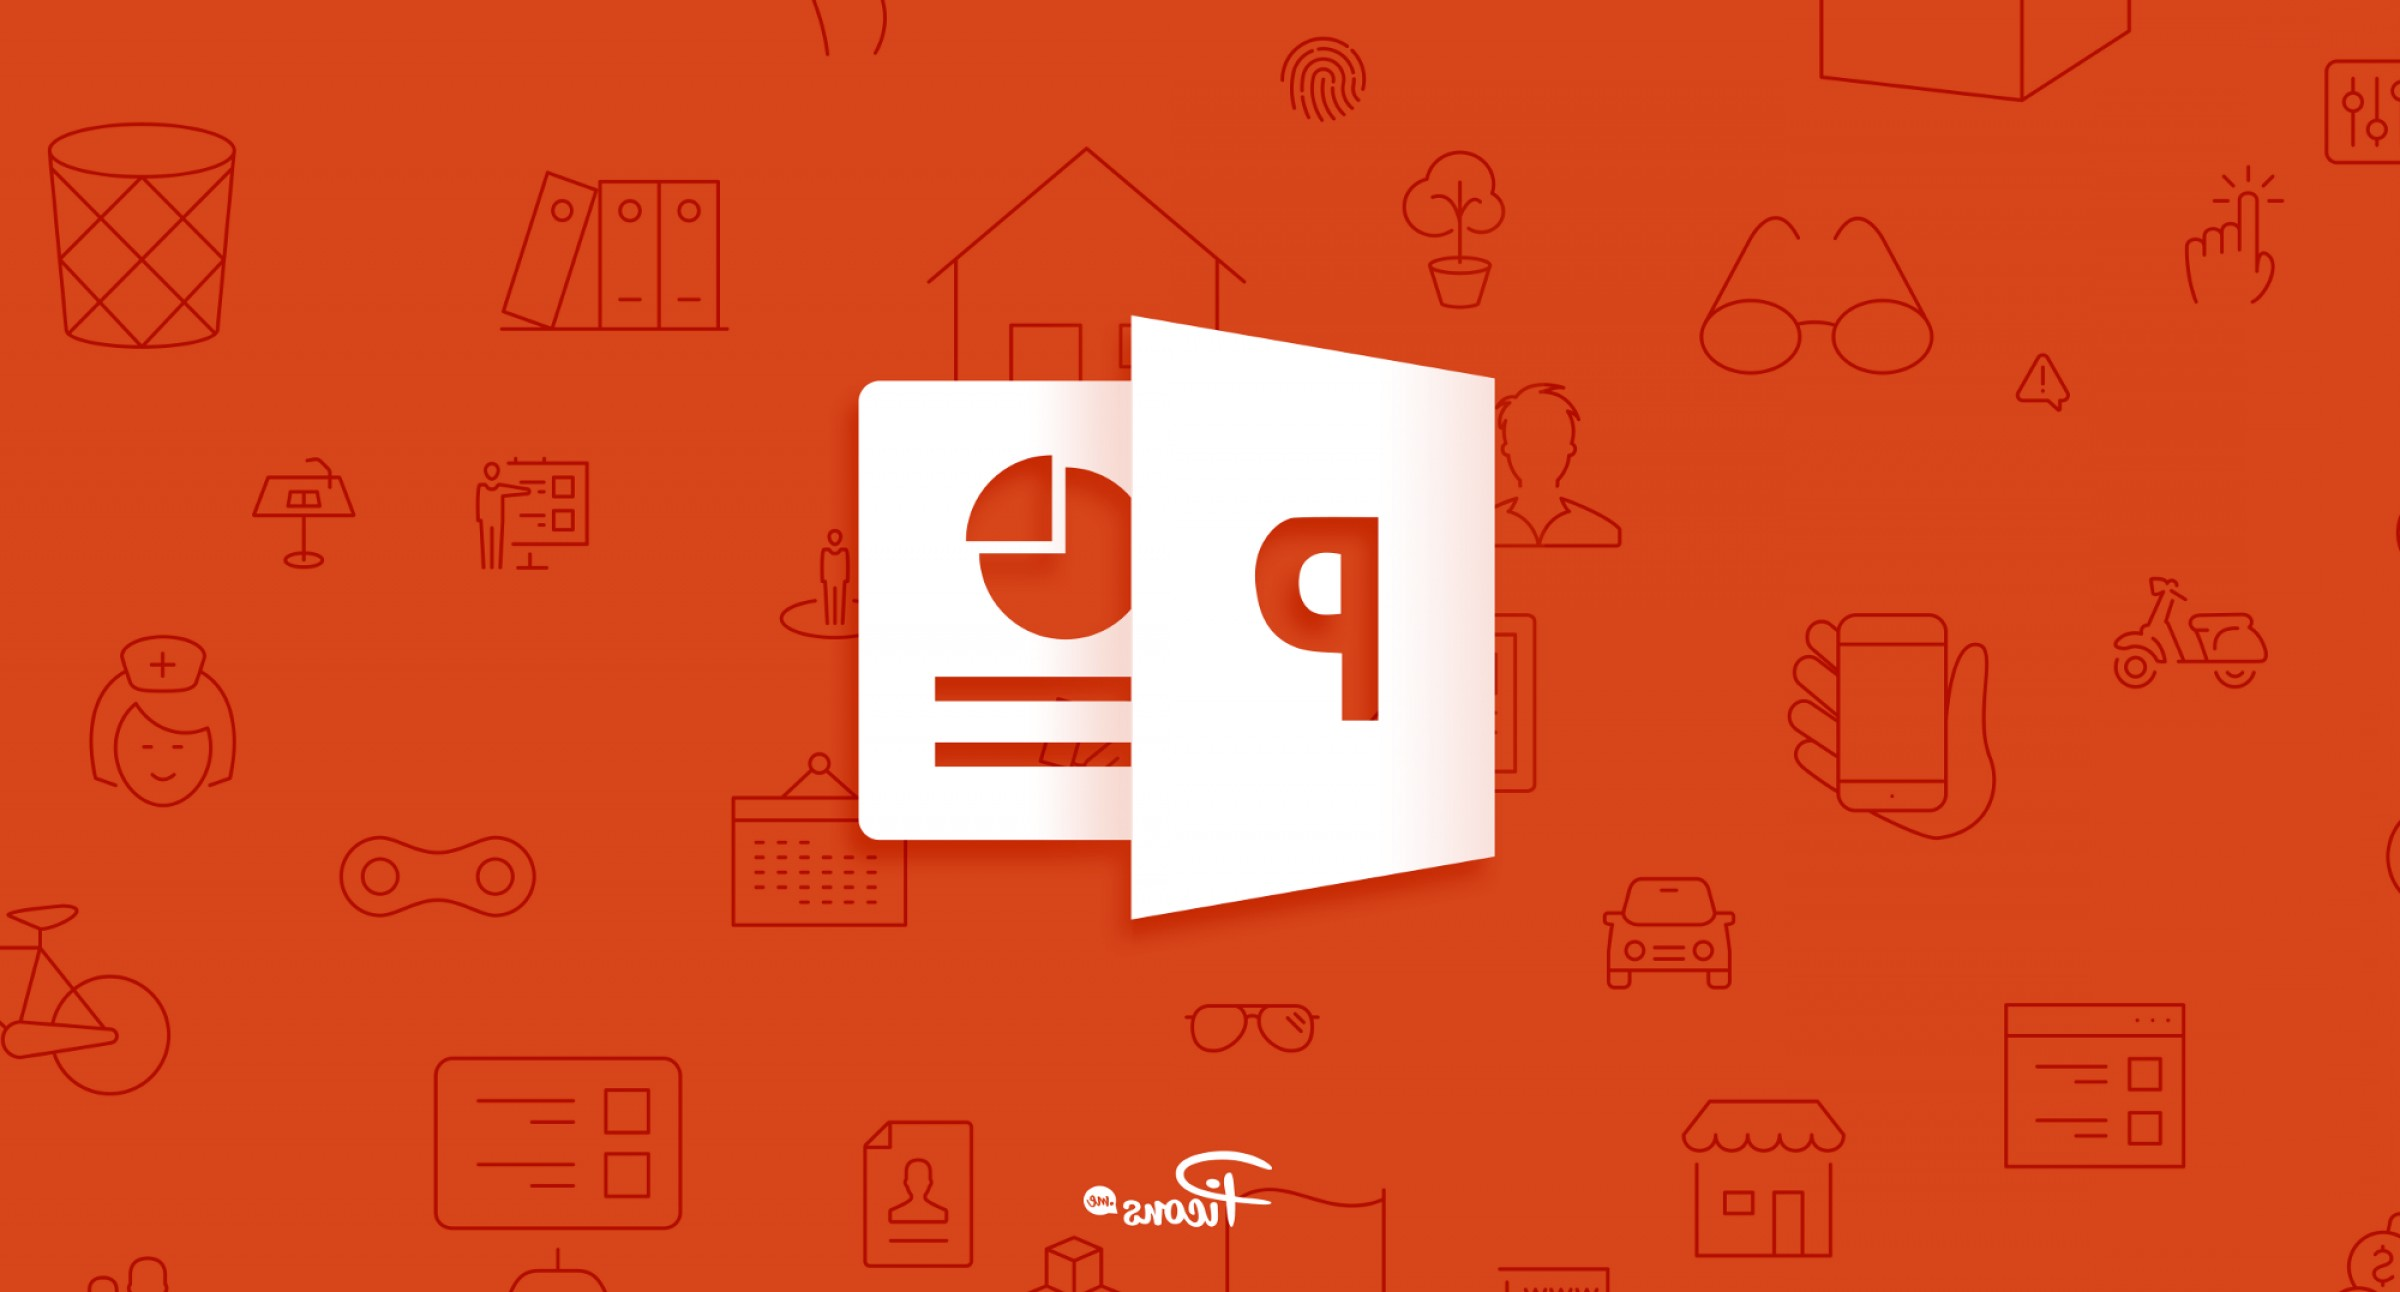 UN Specification Package Vector: How To Use Vector Icons In Microsoft Powerpoint Ecfd